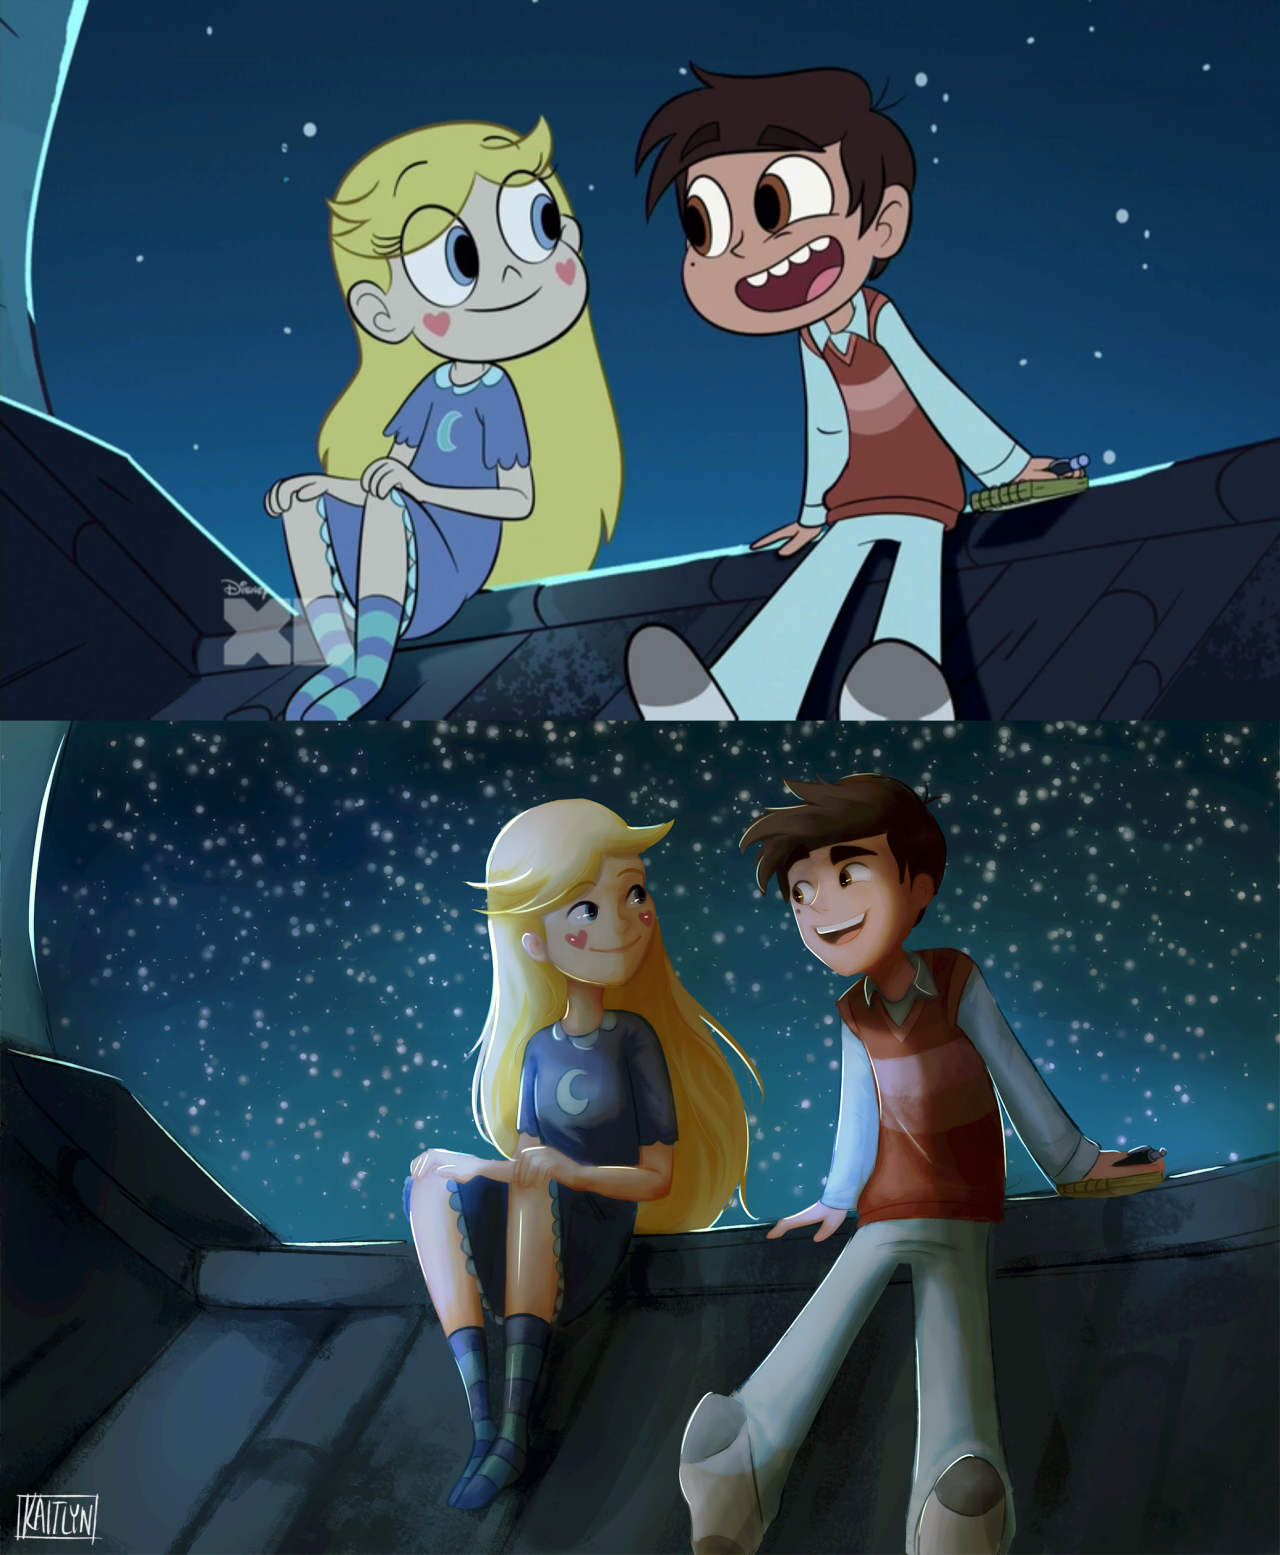 Star Vs The Forces Of Evil Star Vs The Forces Of Evil Star Vs The Forces Force Of Evil